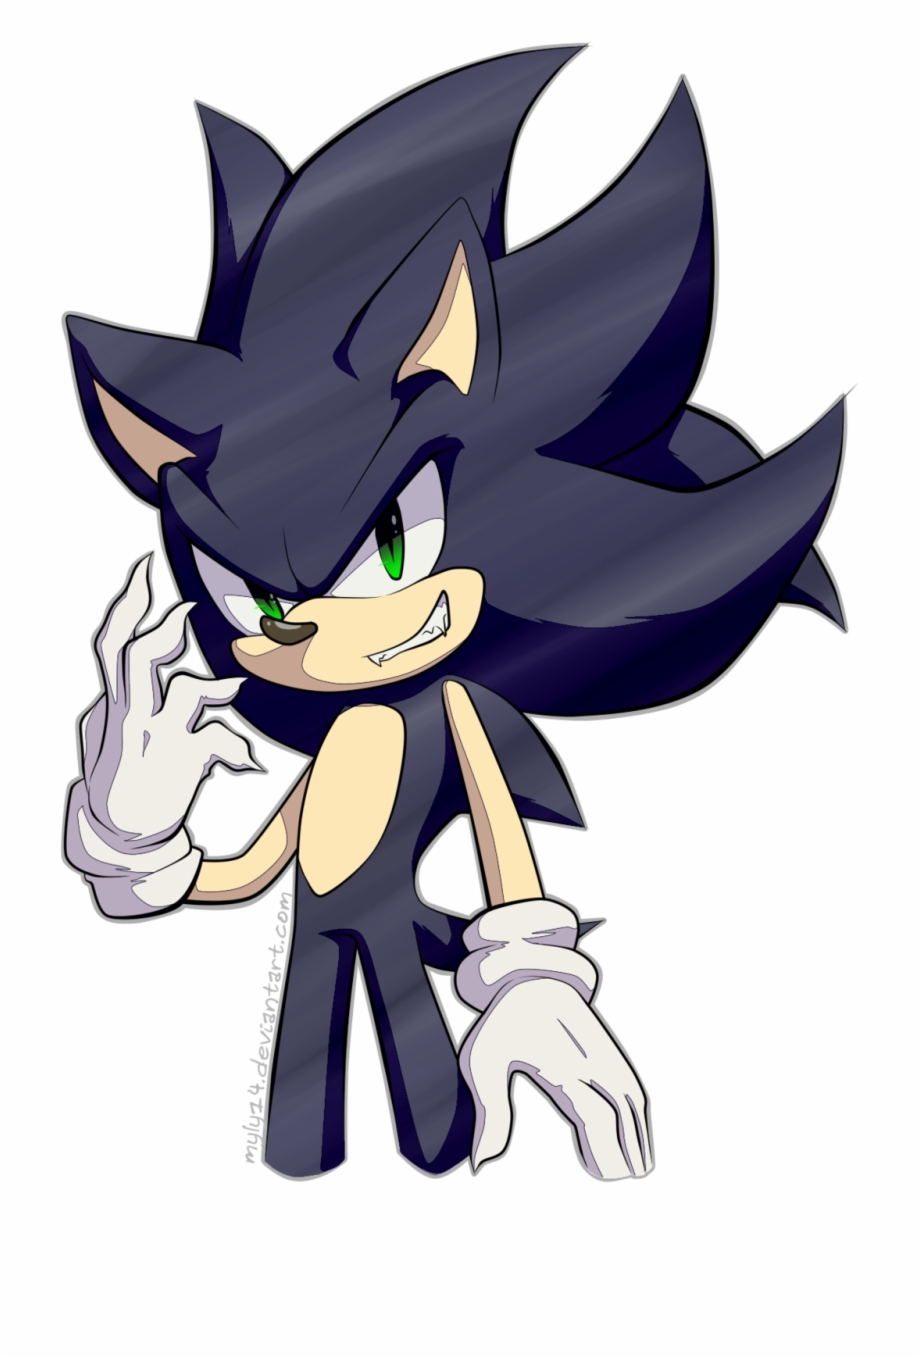 Dark Sonic Dark Sonic Transparent Png Download 3359493 Vippng